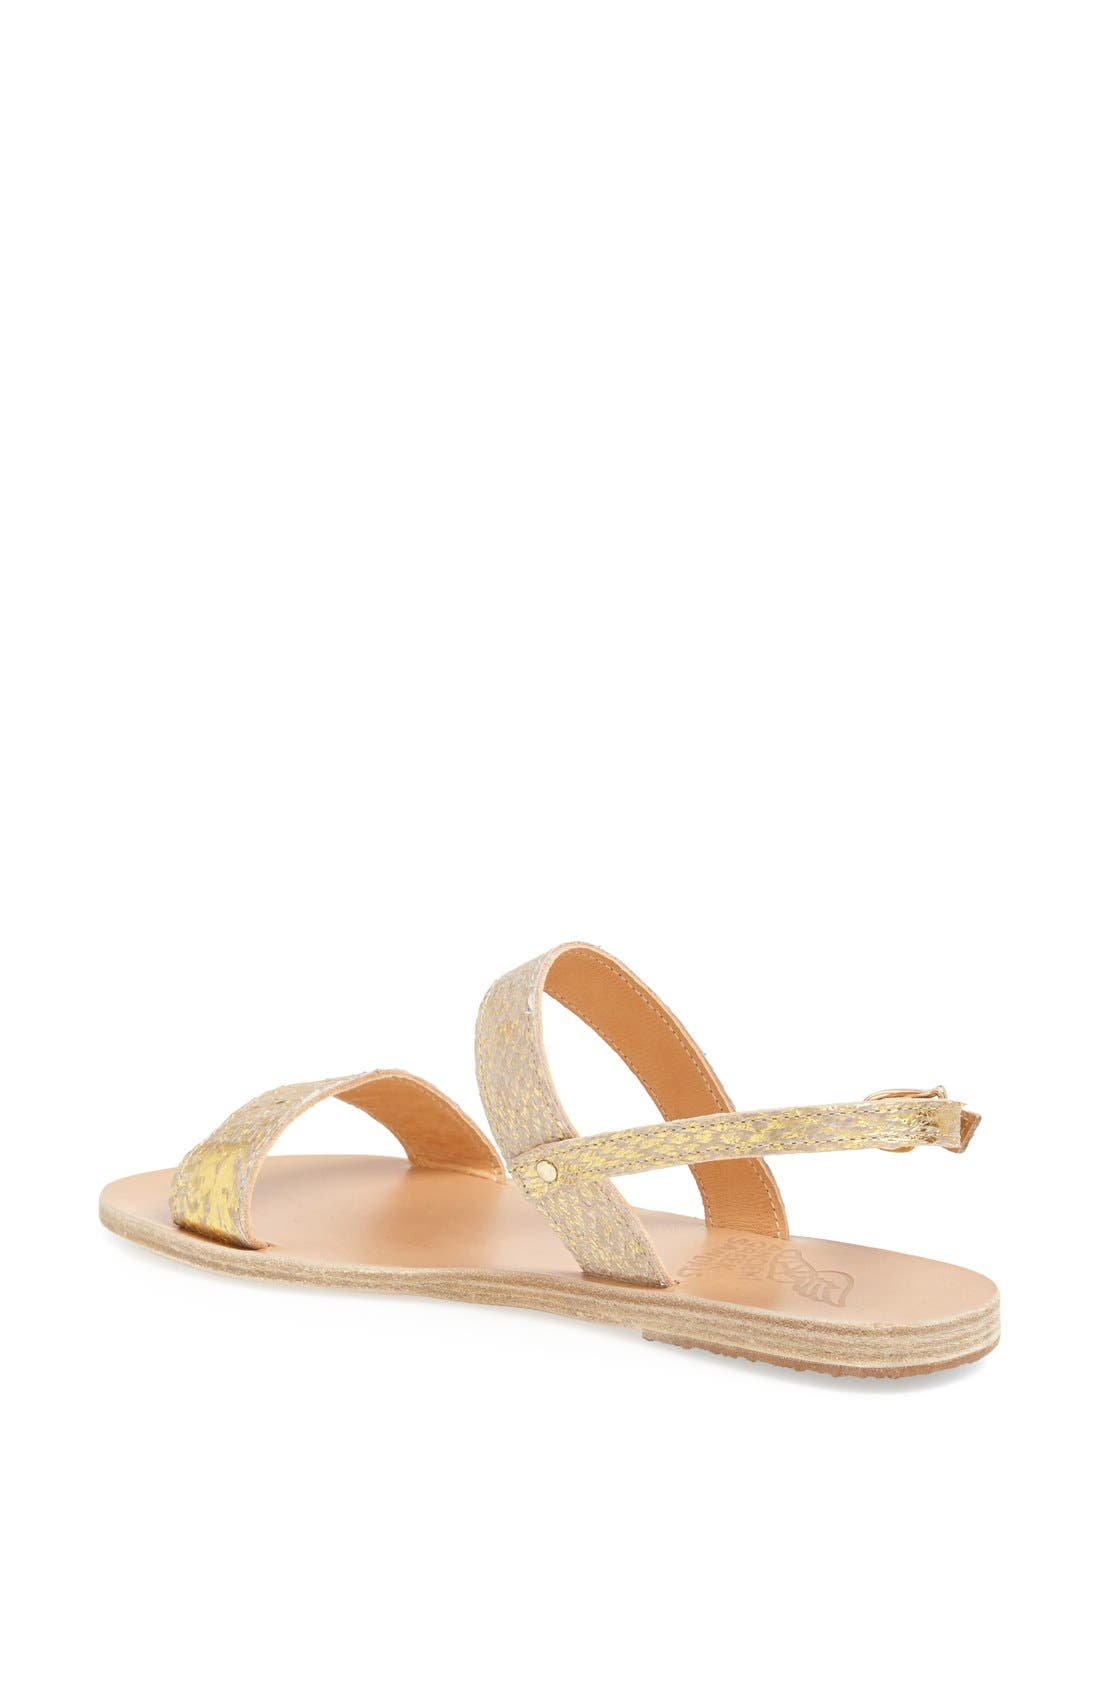 Alternate Image 2  - Ancient Greek Sandals 'Clio' Metallic Salmon Skin Sandal